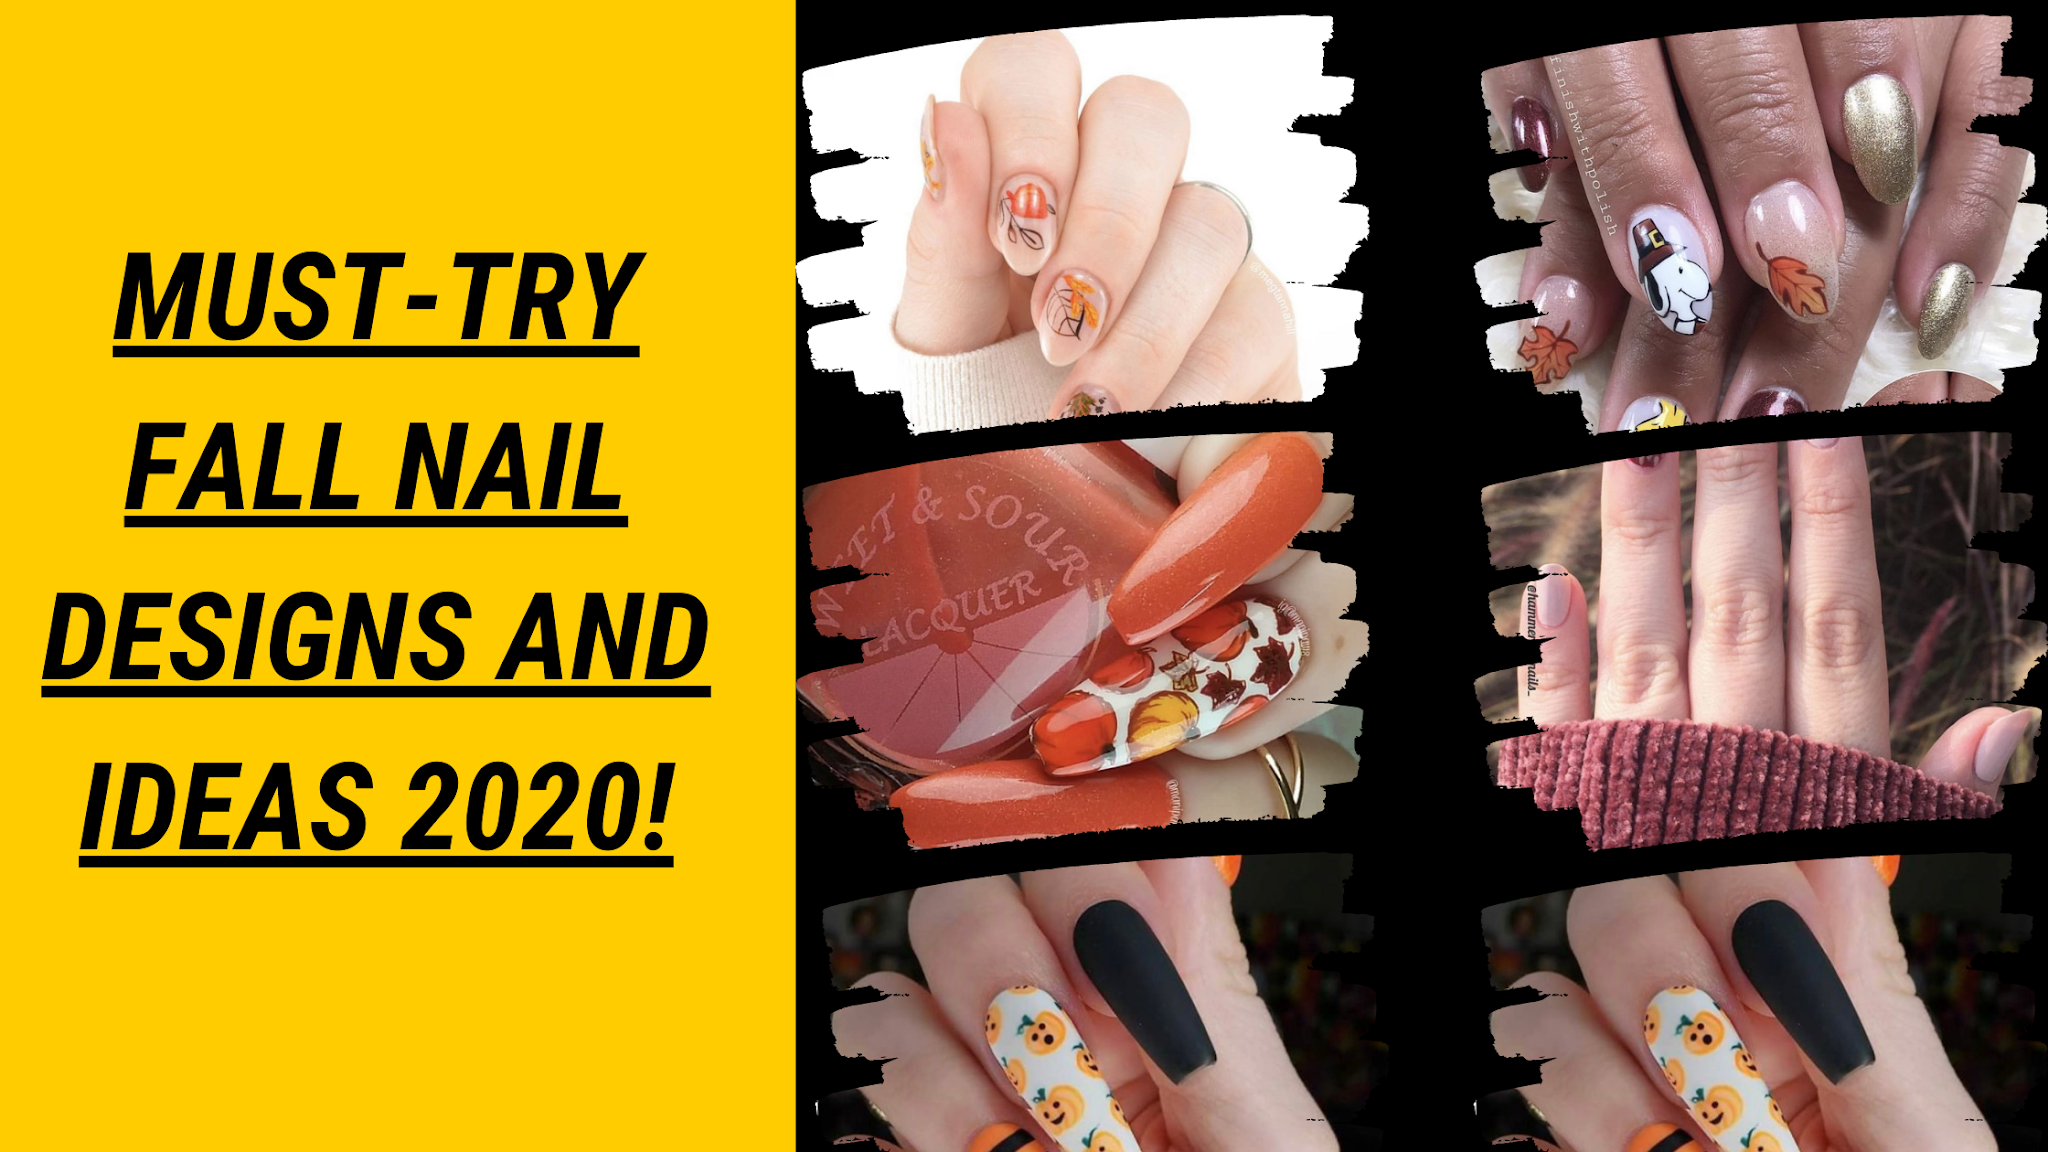 Must-Try Fall Nail Designs And Ideas 2020!